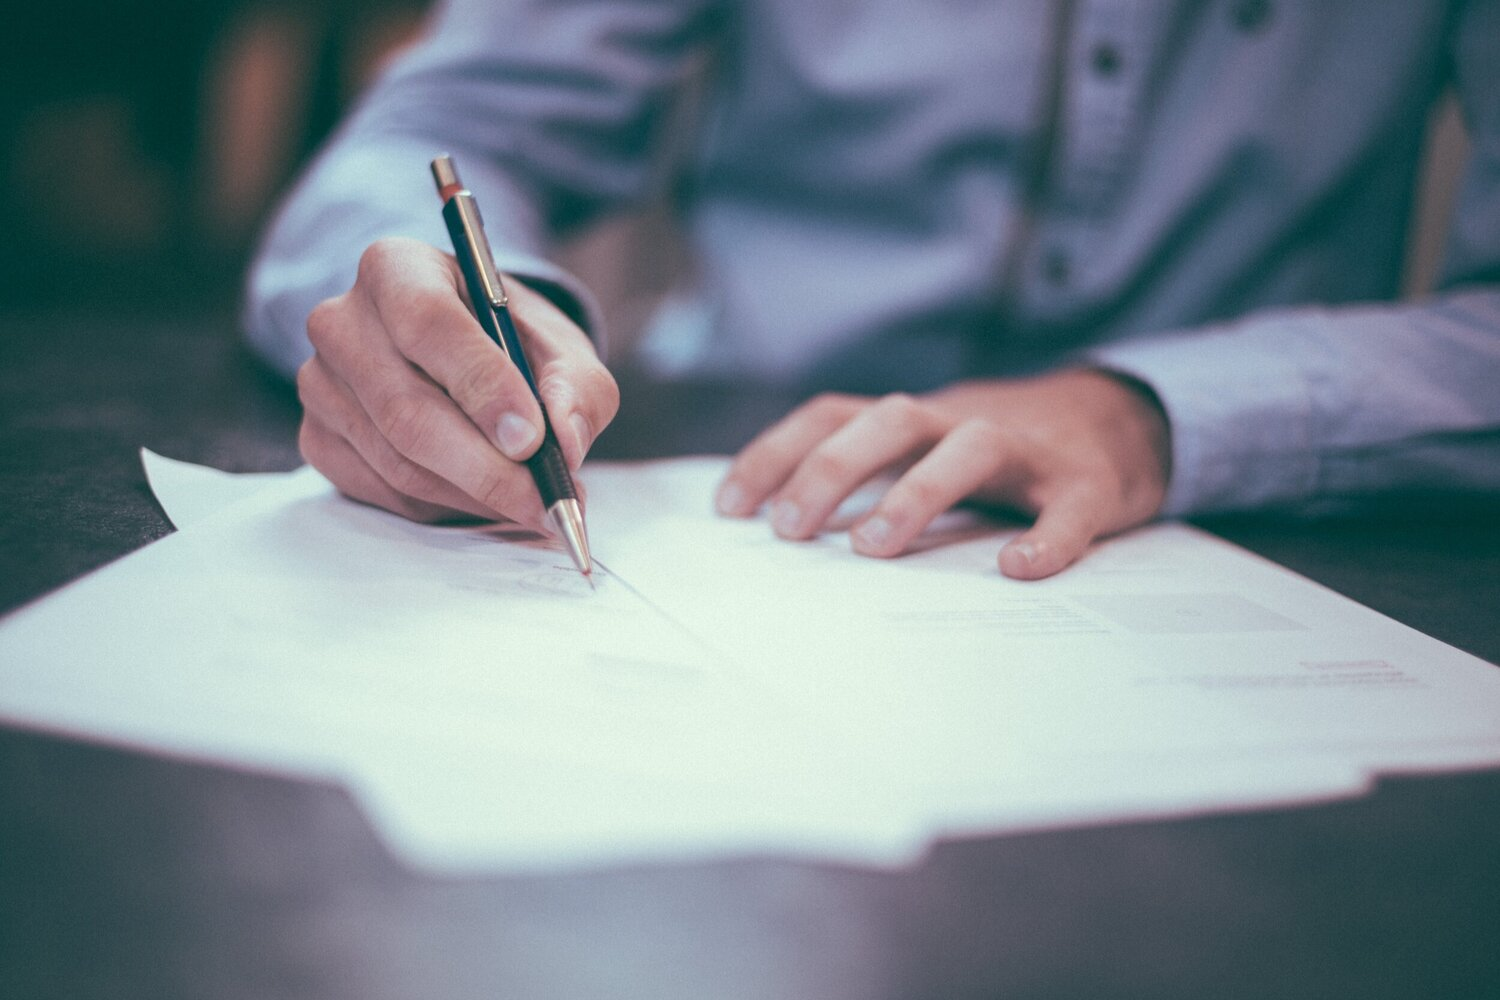 Places to get documents notarized